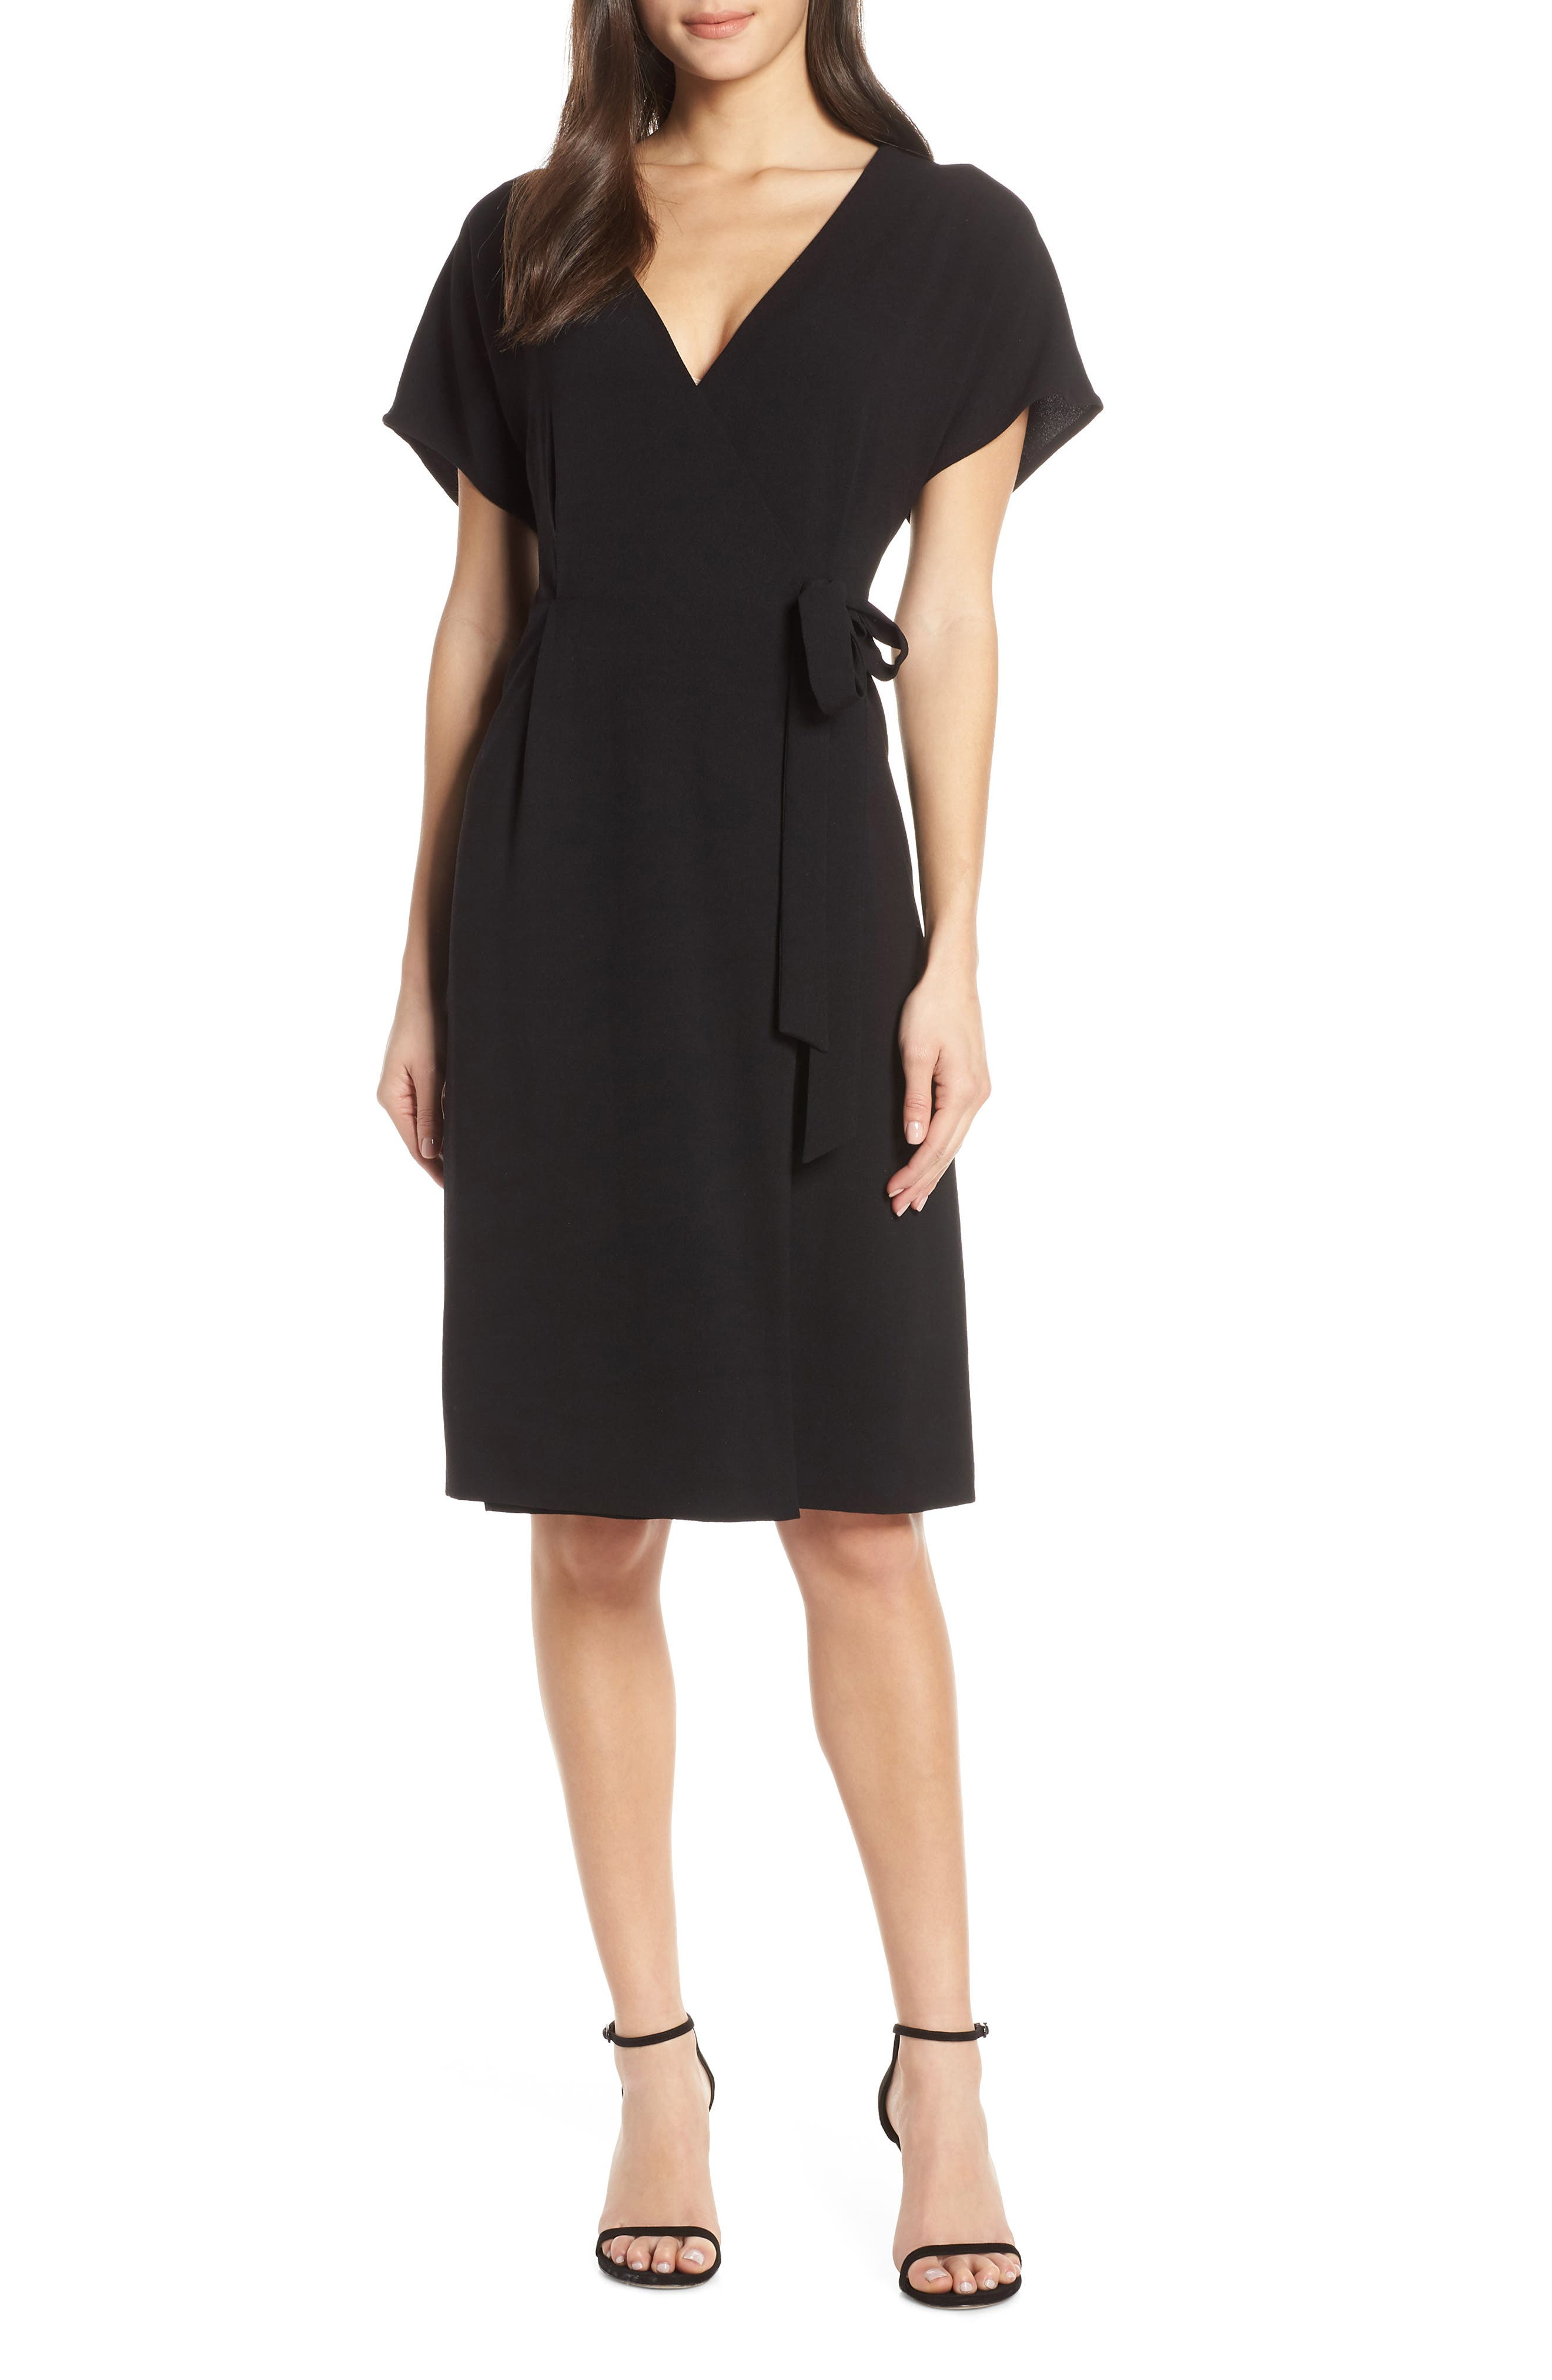 CHARLES HENRY, Faux Wrap Dress, Main thumbnail 1, color, BLACK